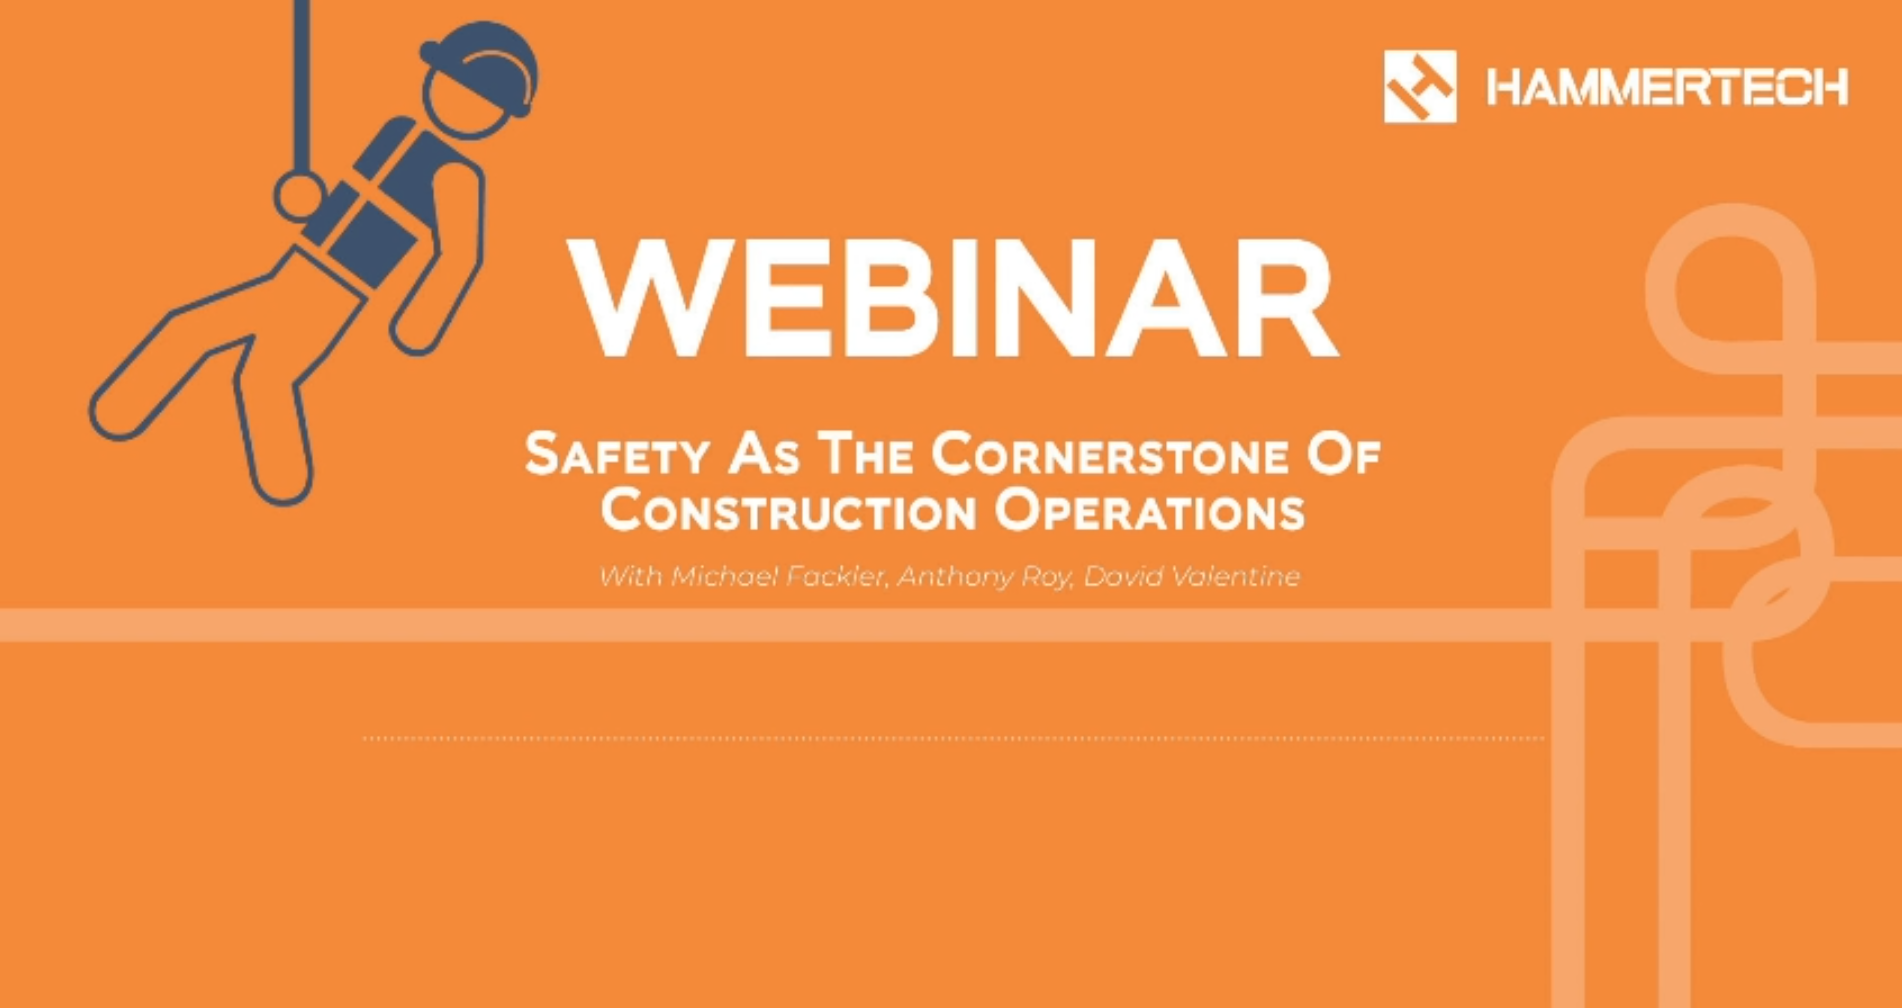 Safety as the cornerstone